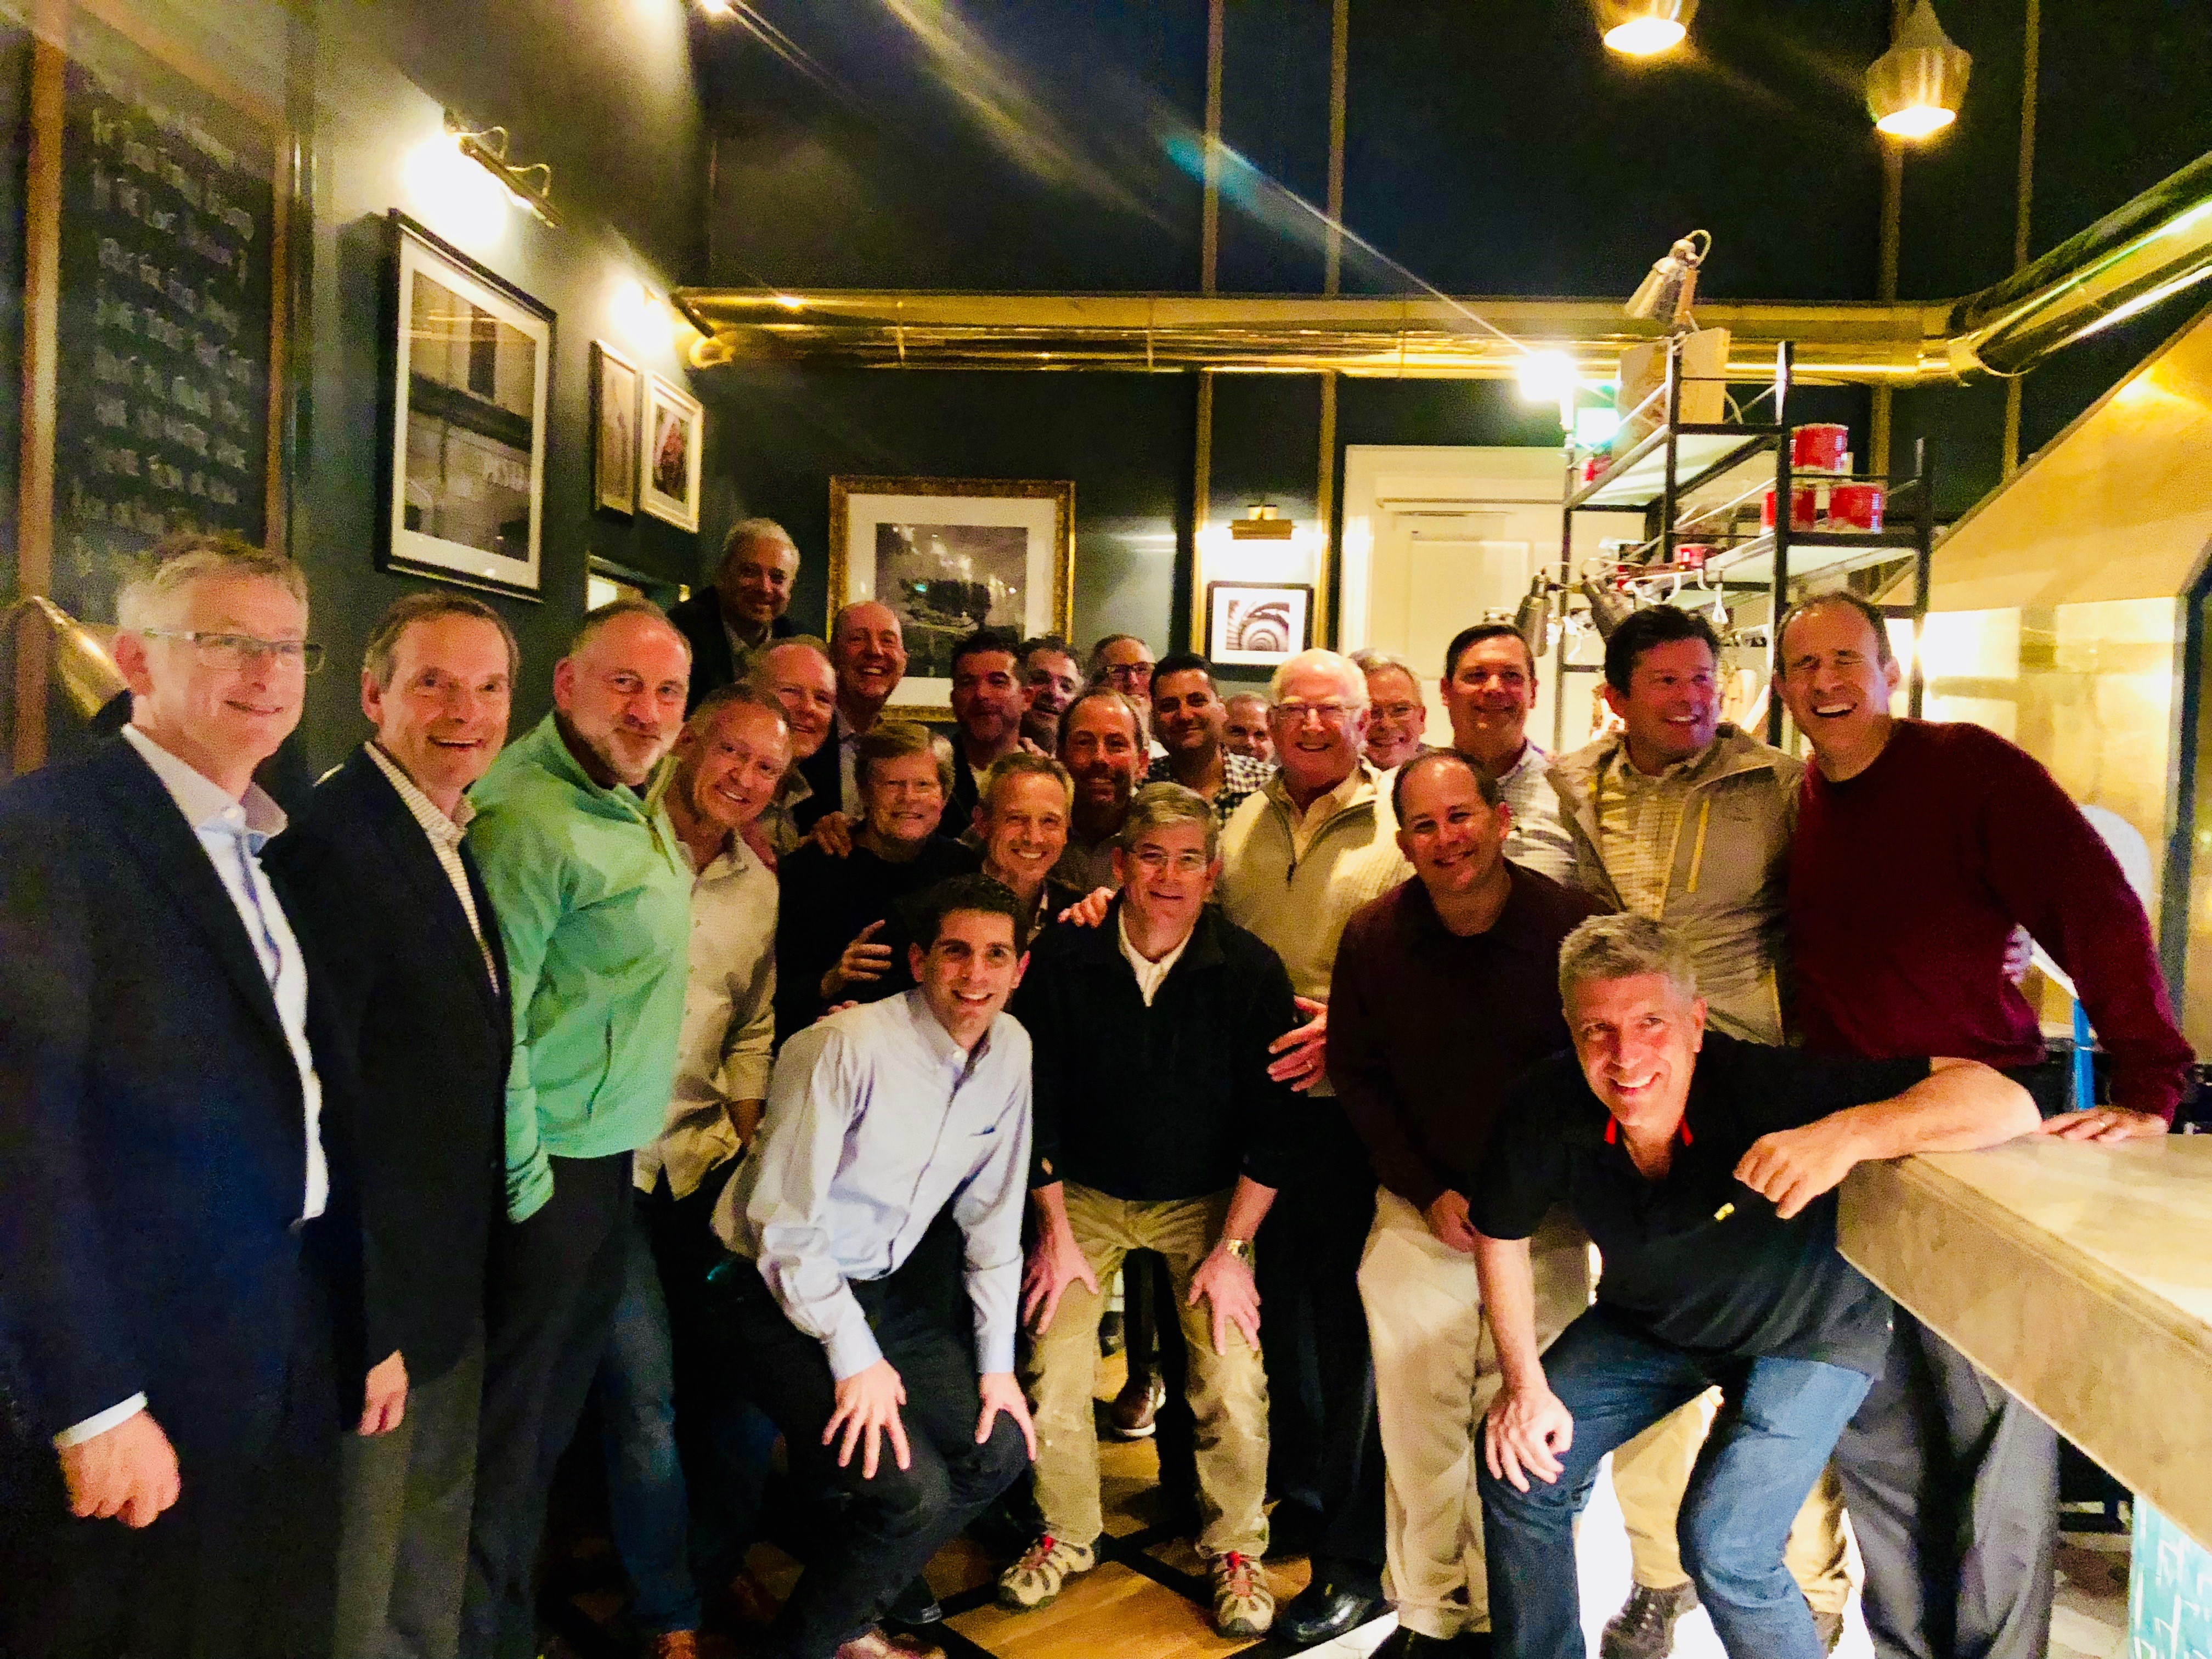 Richard Rothman, with silver hair and zip-front sweater near the center, traveled to Iceland earlier this month for a meeting of Rothman Institute boards.